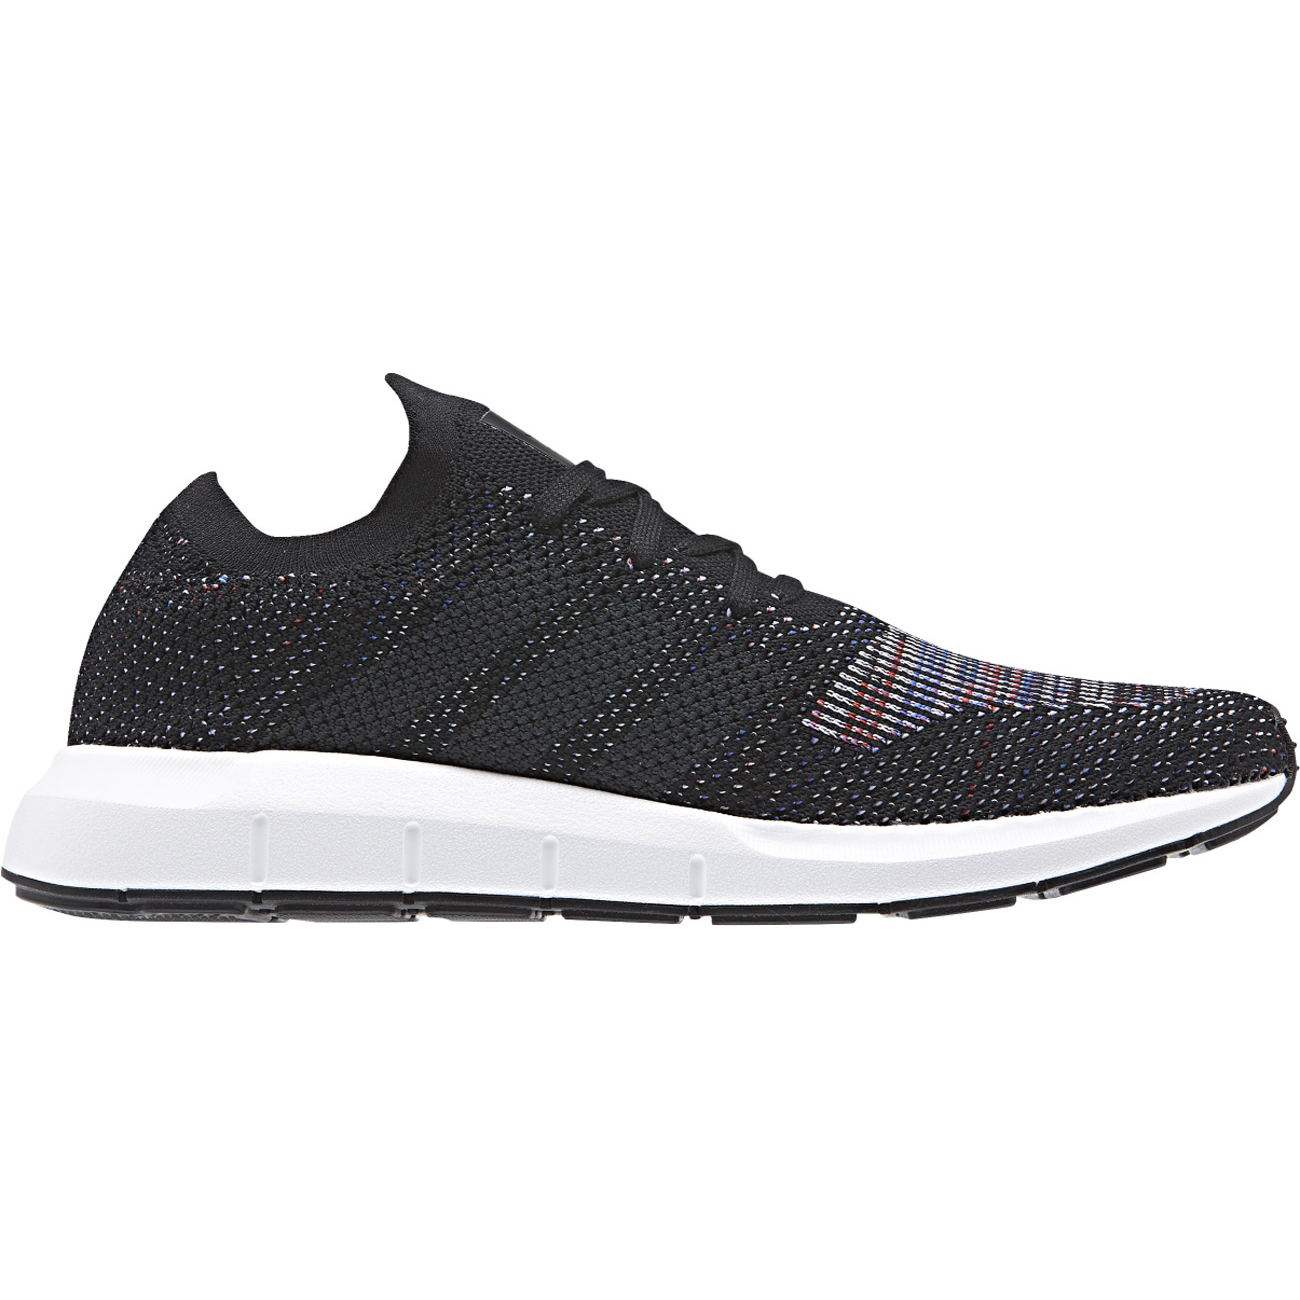 Adidas Originals Herren Sneaker SWIFT RUN PK 1 70755e55c1